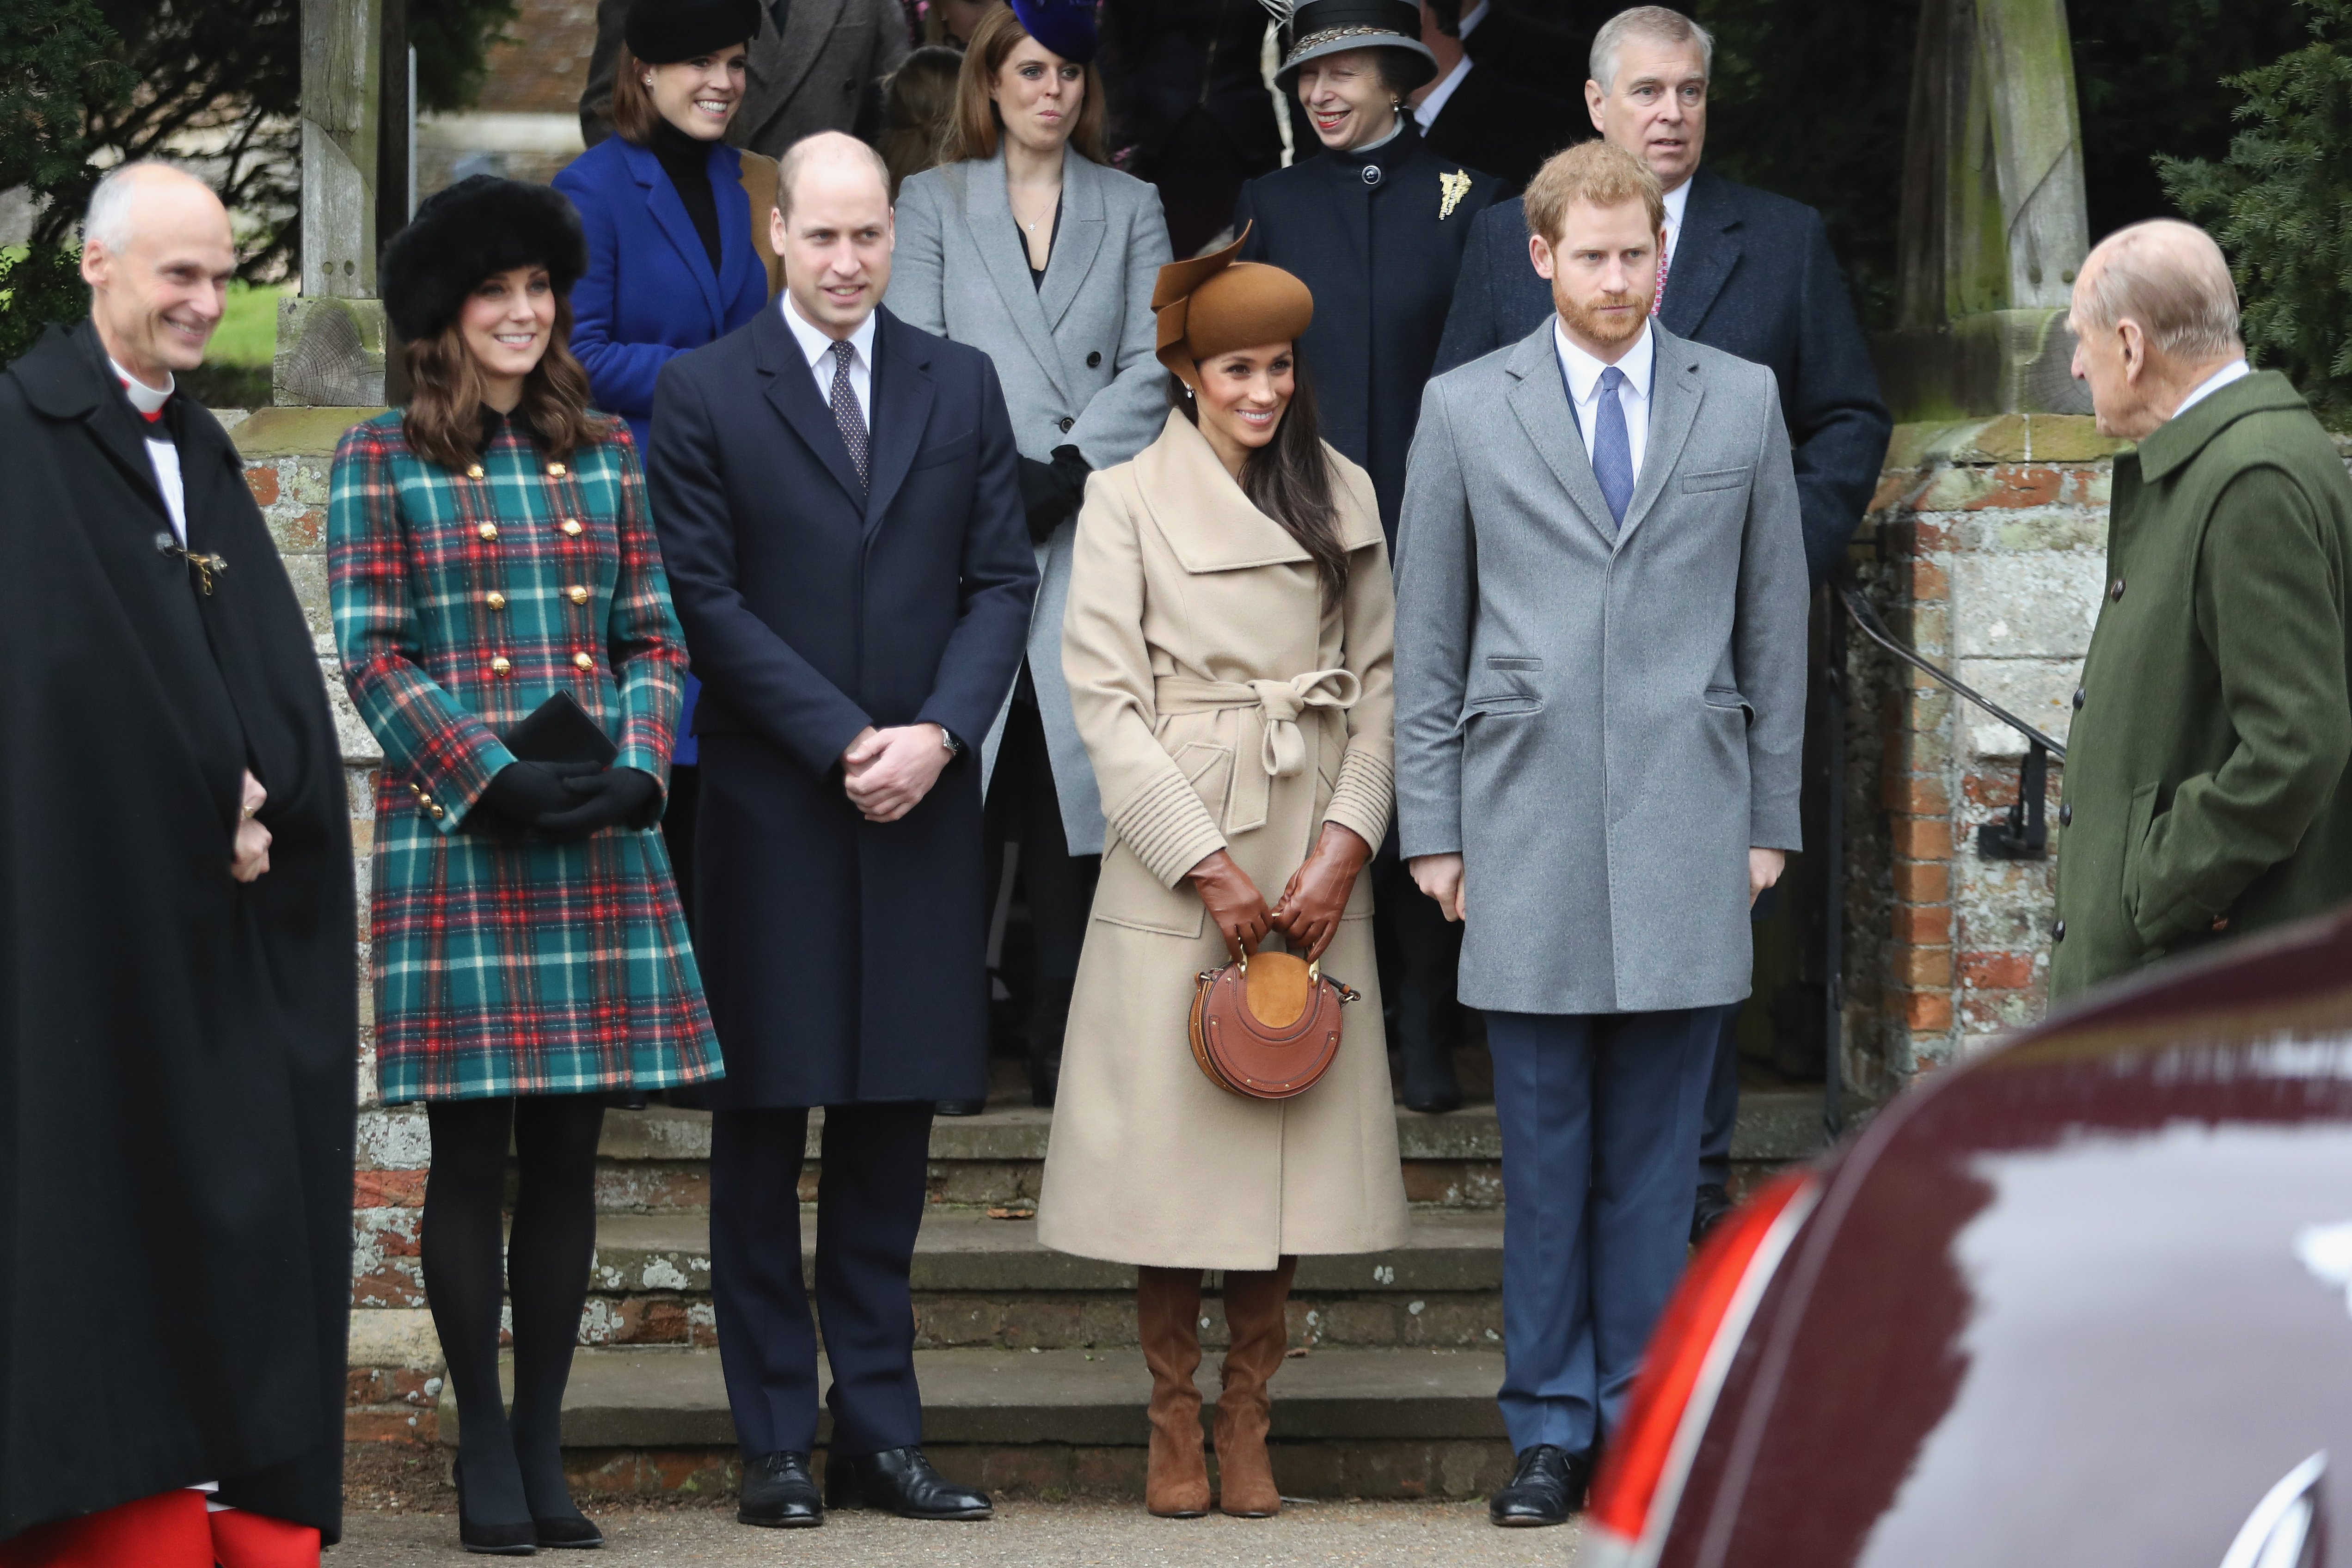 The Cambriges and Sussexes pictured together at the royal family Christmas in Sandringham, Norfolk, 2017. | Photo: Getty Images